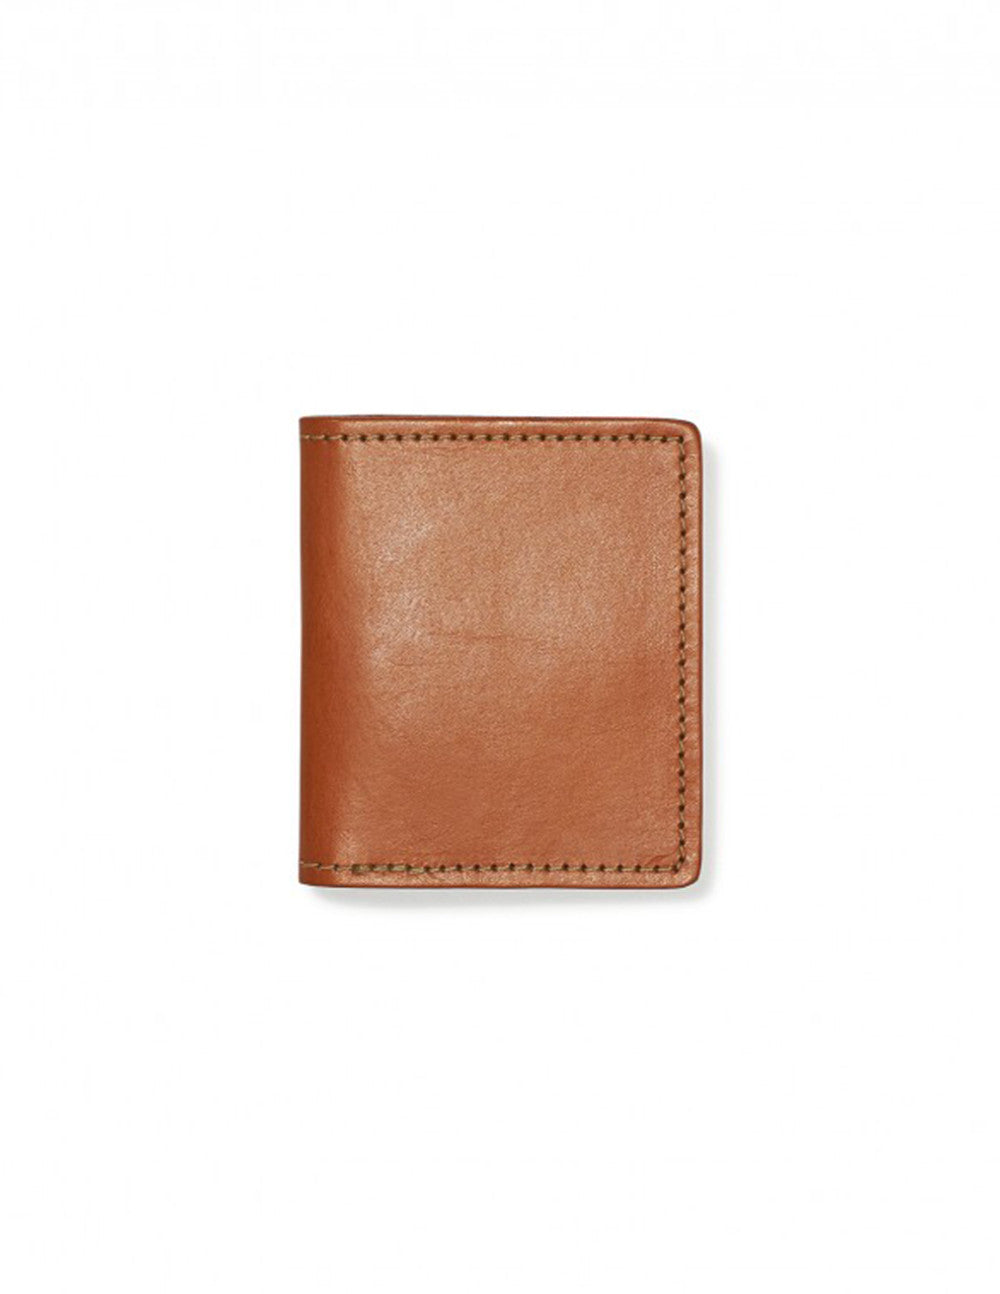 Cash & Card Case